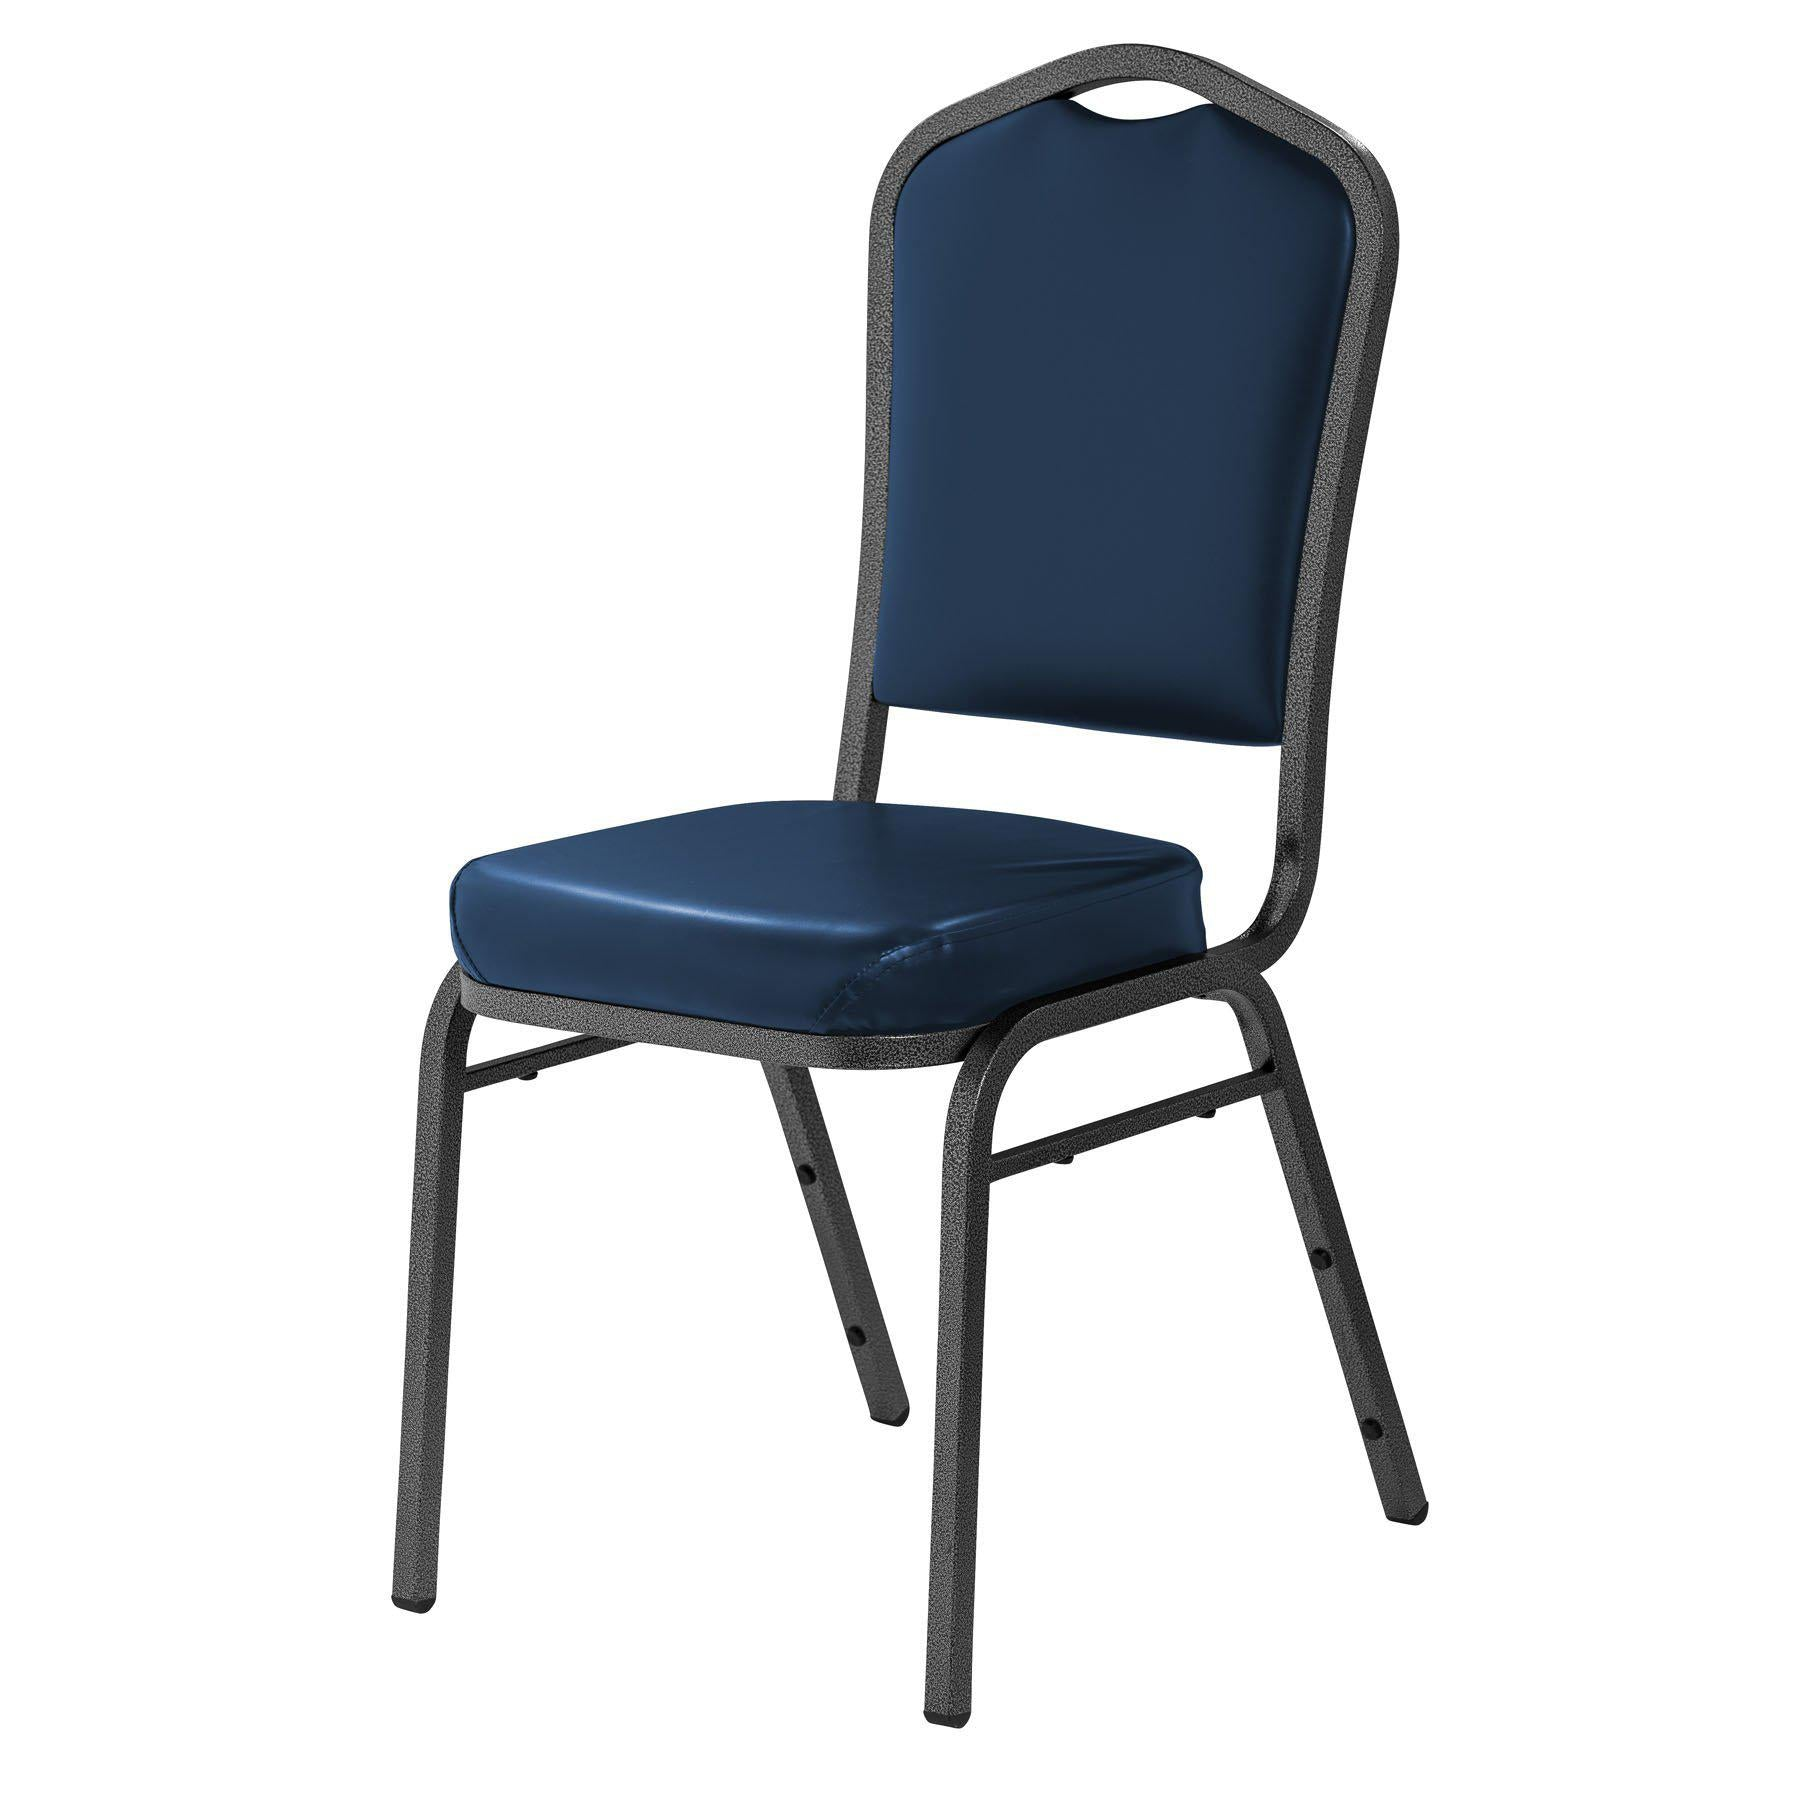 Deluxe Upholstered Silhouette Stack Chair